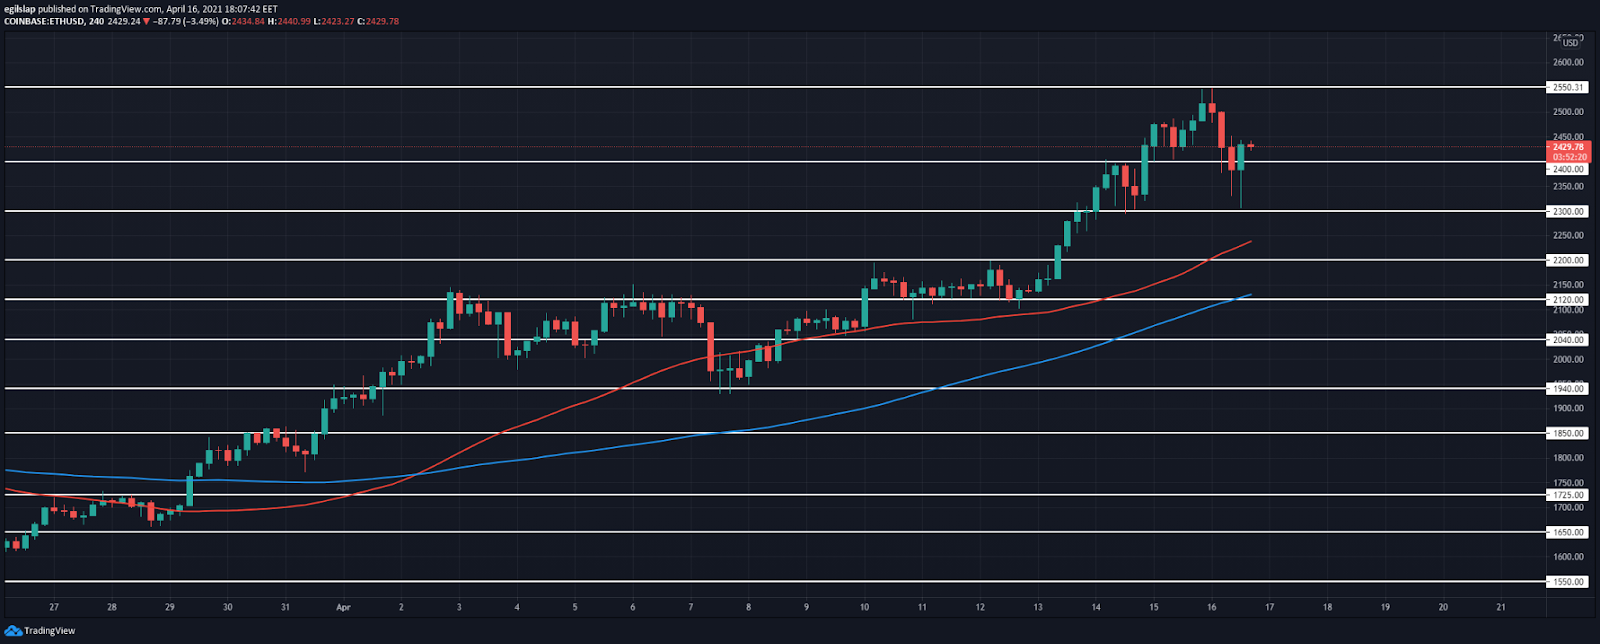 Ethereum price prediction: Ethereum retests $2,300, prepares for another move higher over the weekend